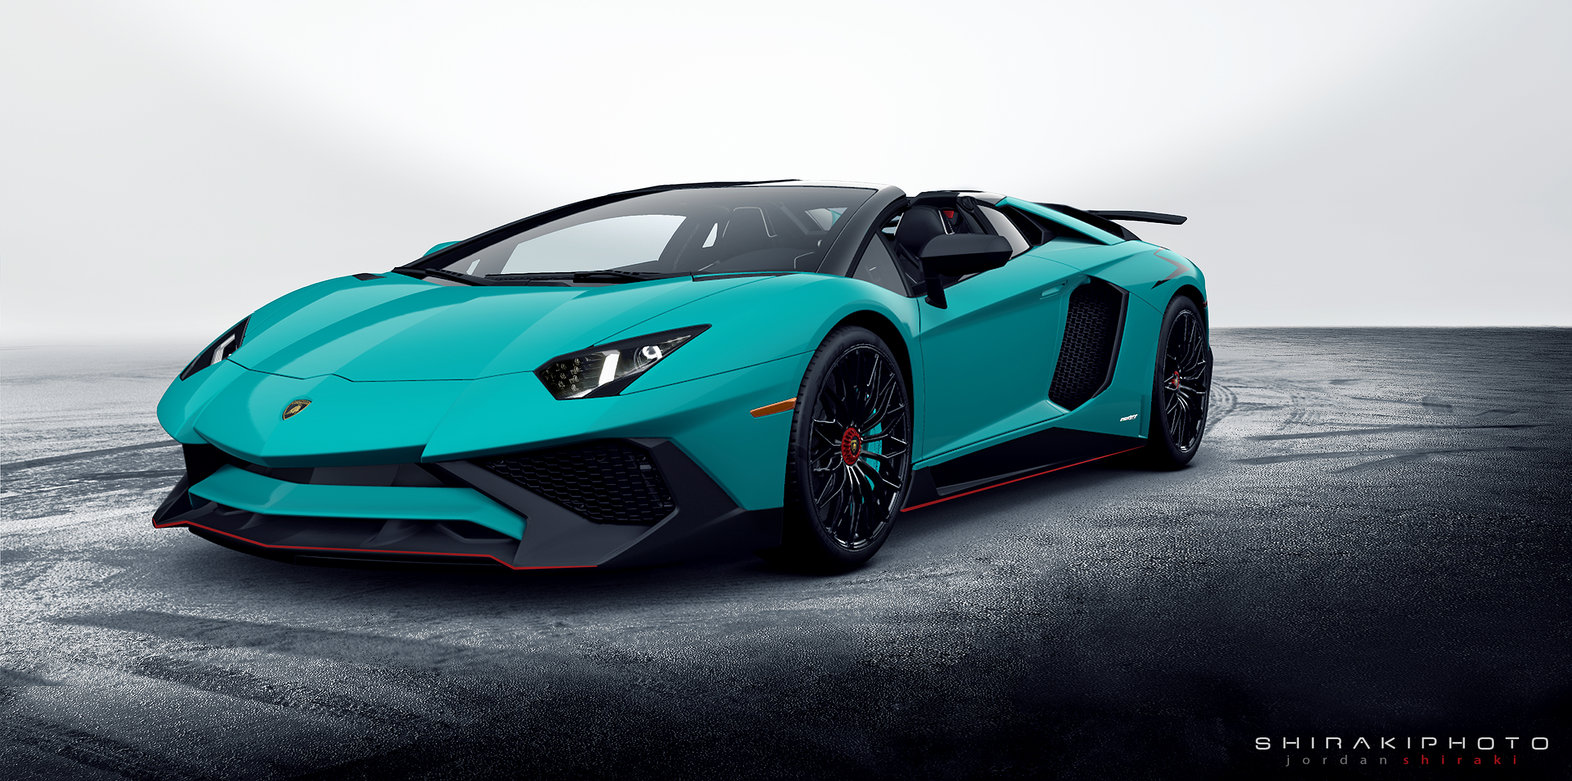 2019 Lamborghini Aventador LP750 4 SV photo - 2